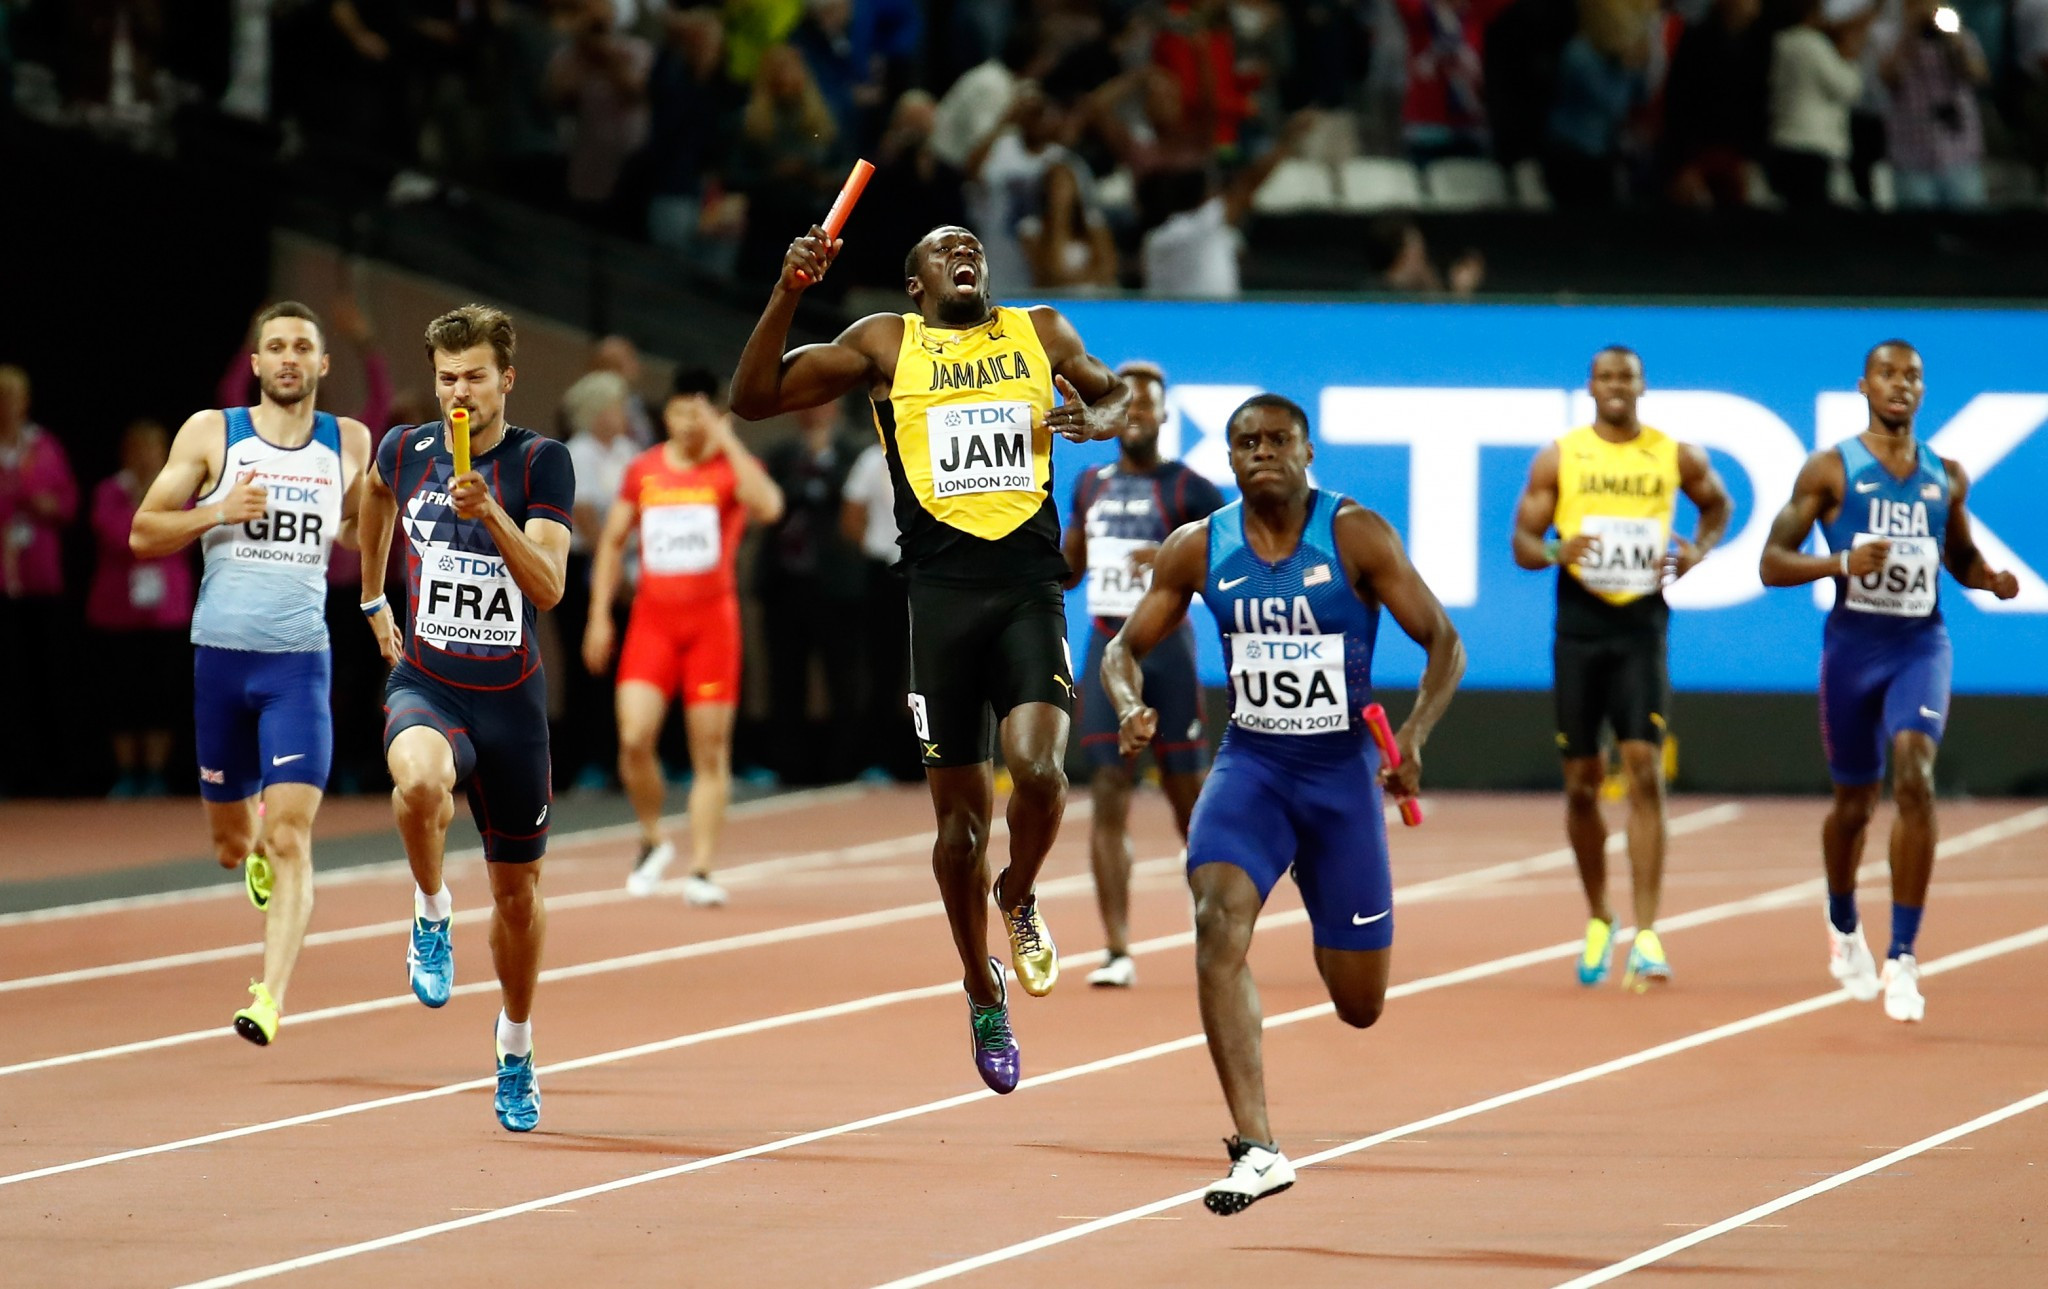 Usain Bolt pulled up with injury in the final race of his career ©Getty Images